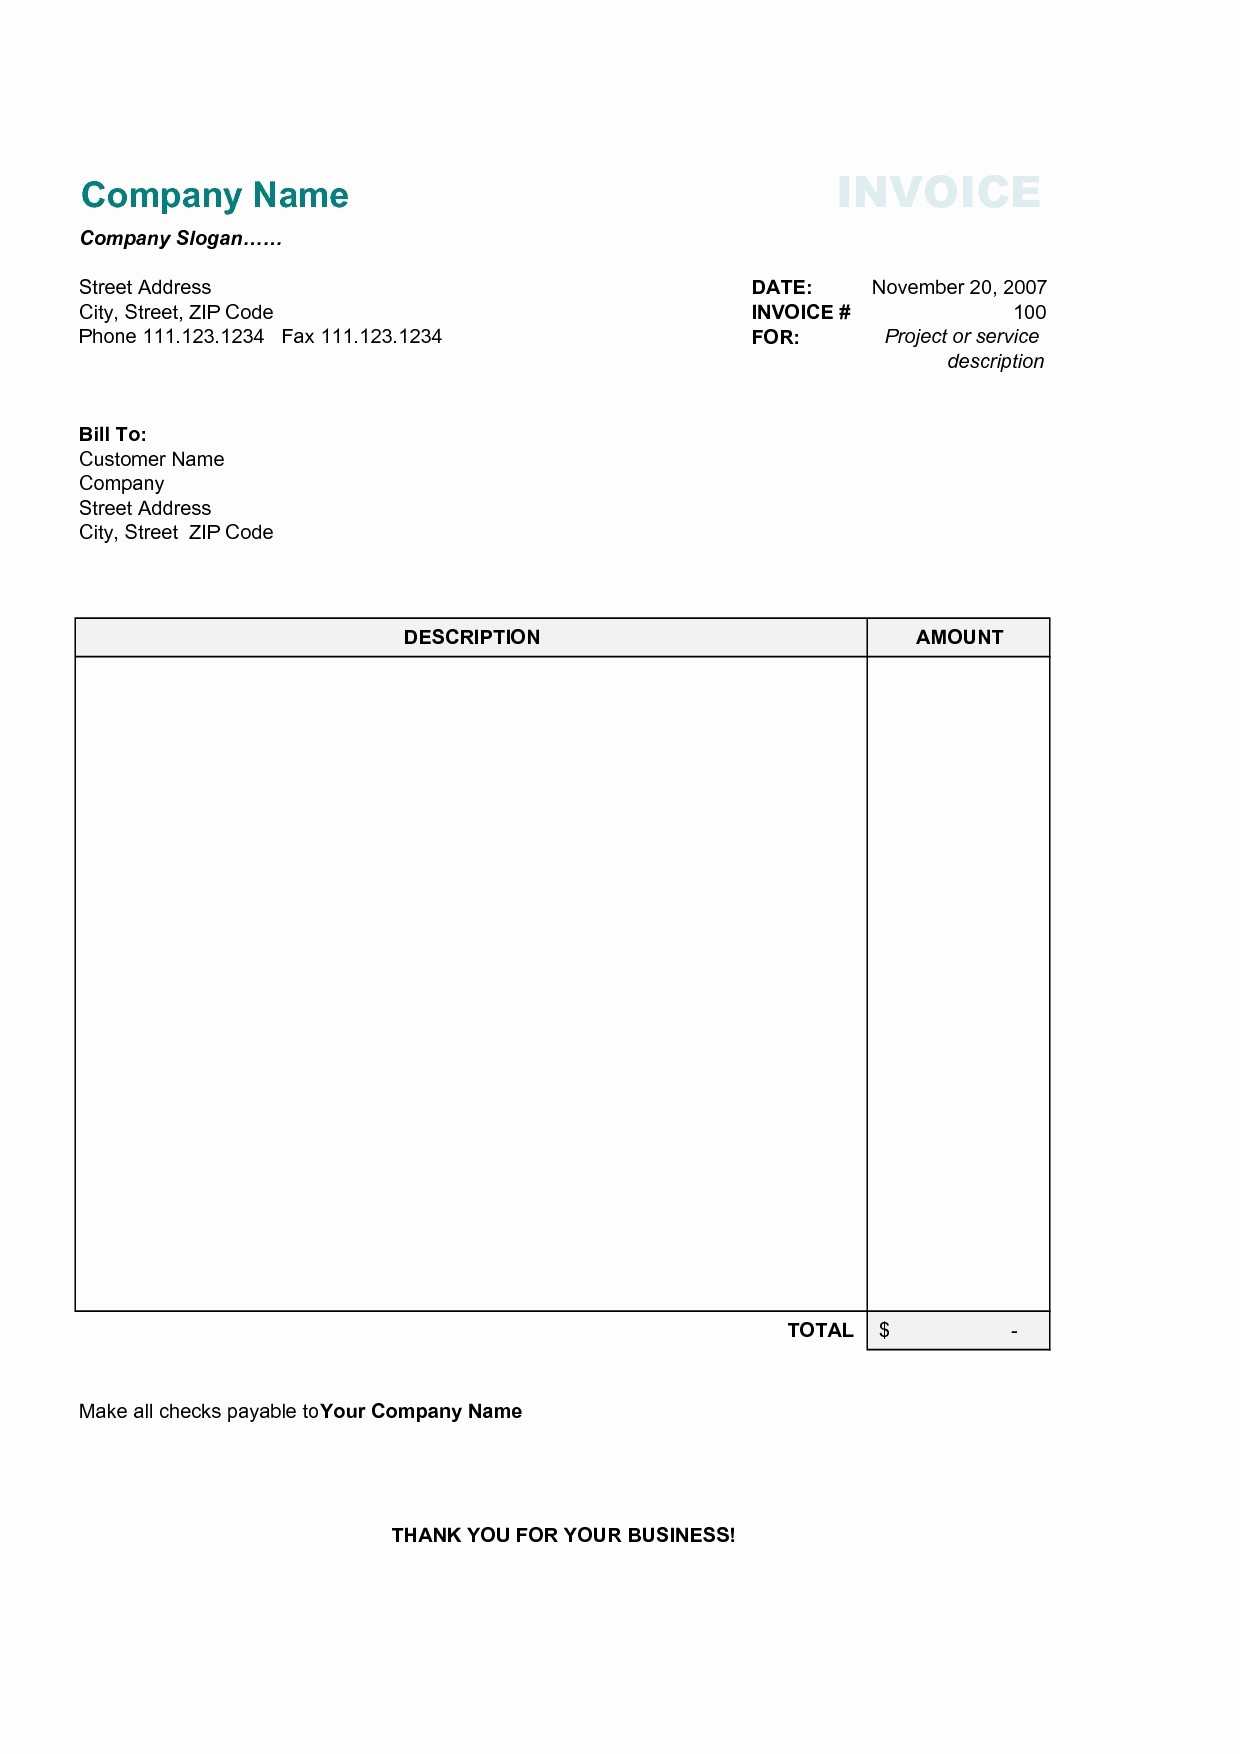 Free Templates for Invoices Printable Elegant Simple Invoice Template Pdf Invoice Template Ideas